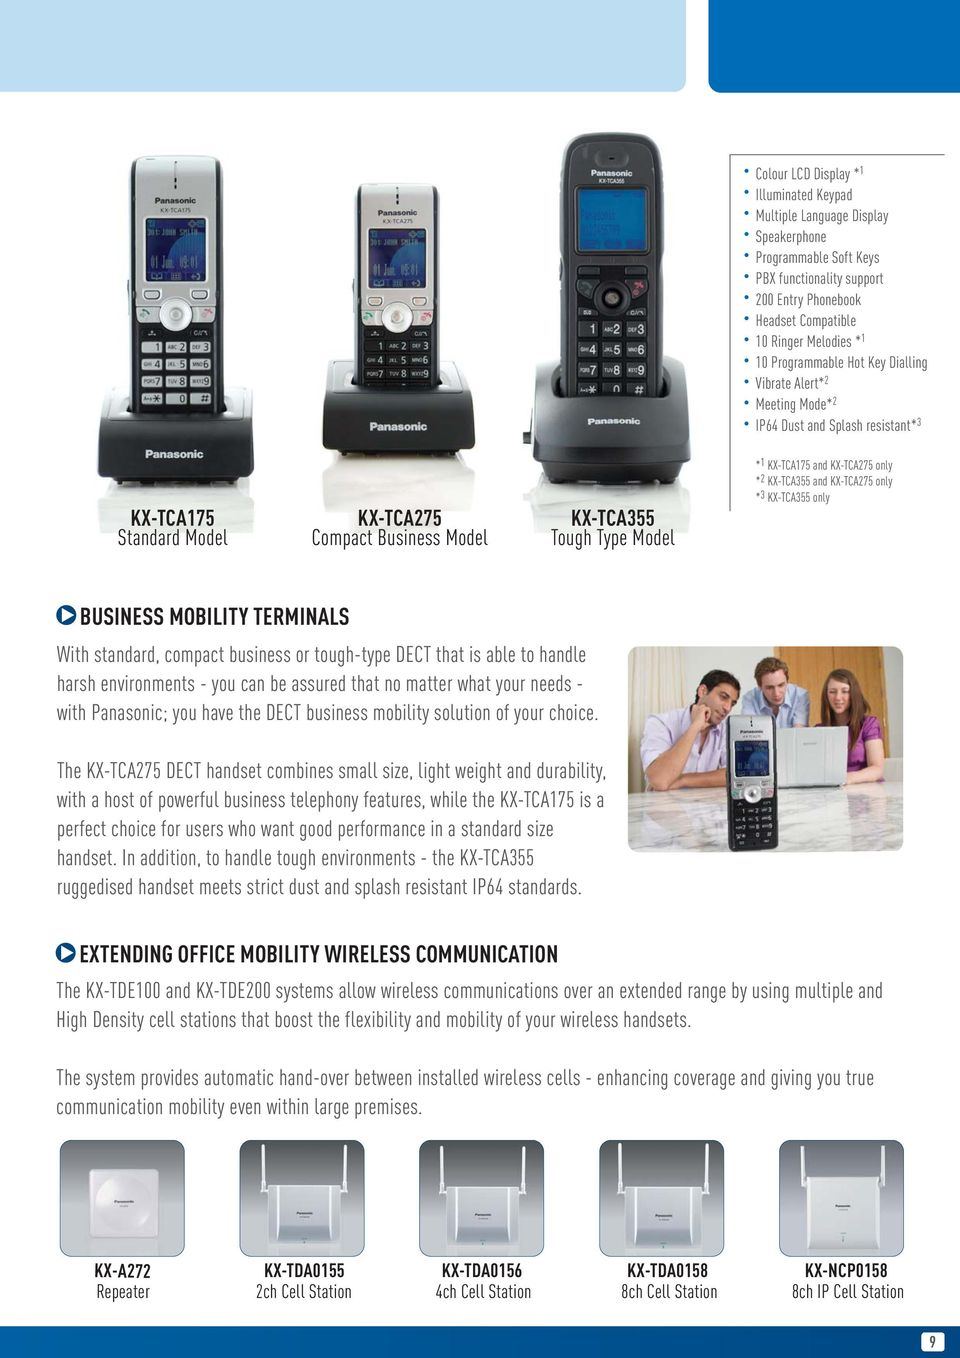 KX-TCA275 only * 2 KX-TCA355 and KX-TCA275 only * 3 KX-TCA355 only BUSINESS MOBILITY TERMINALS With standard, compact business or tough-type DECT that is able to handle harsh environments - you can